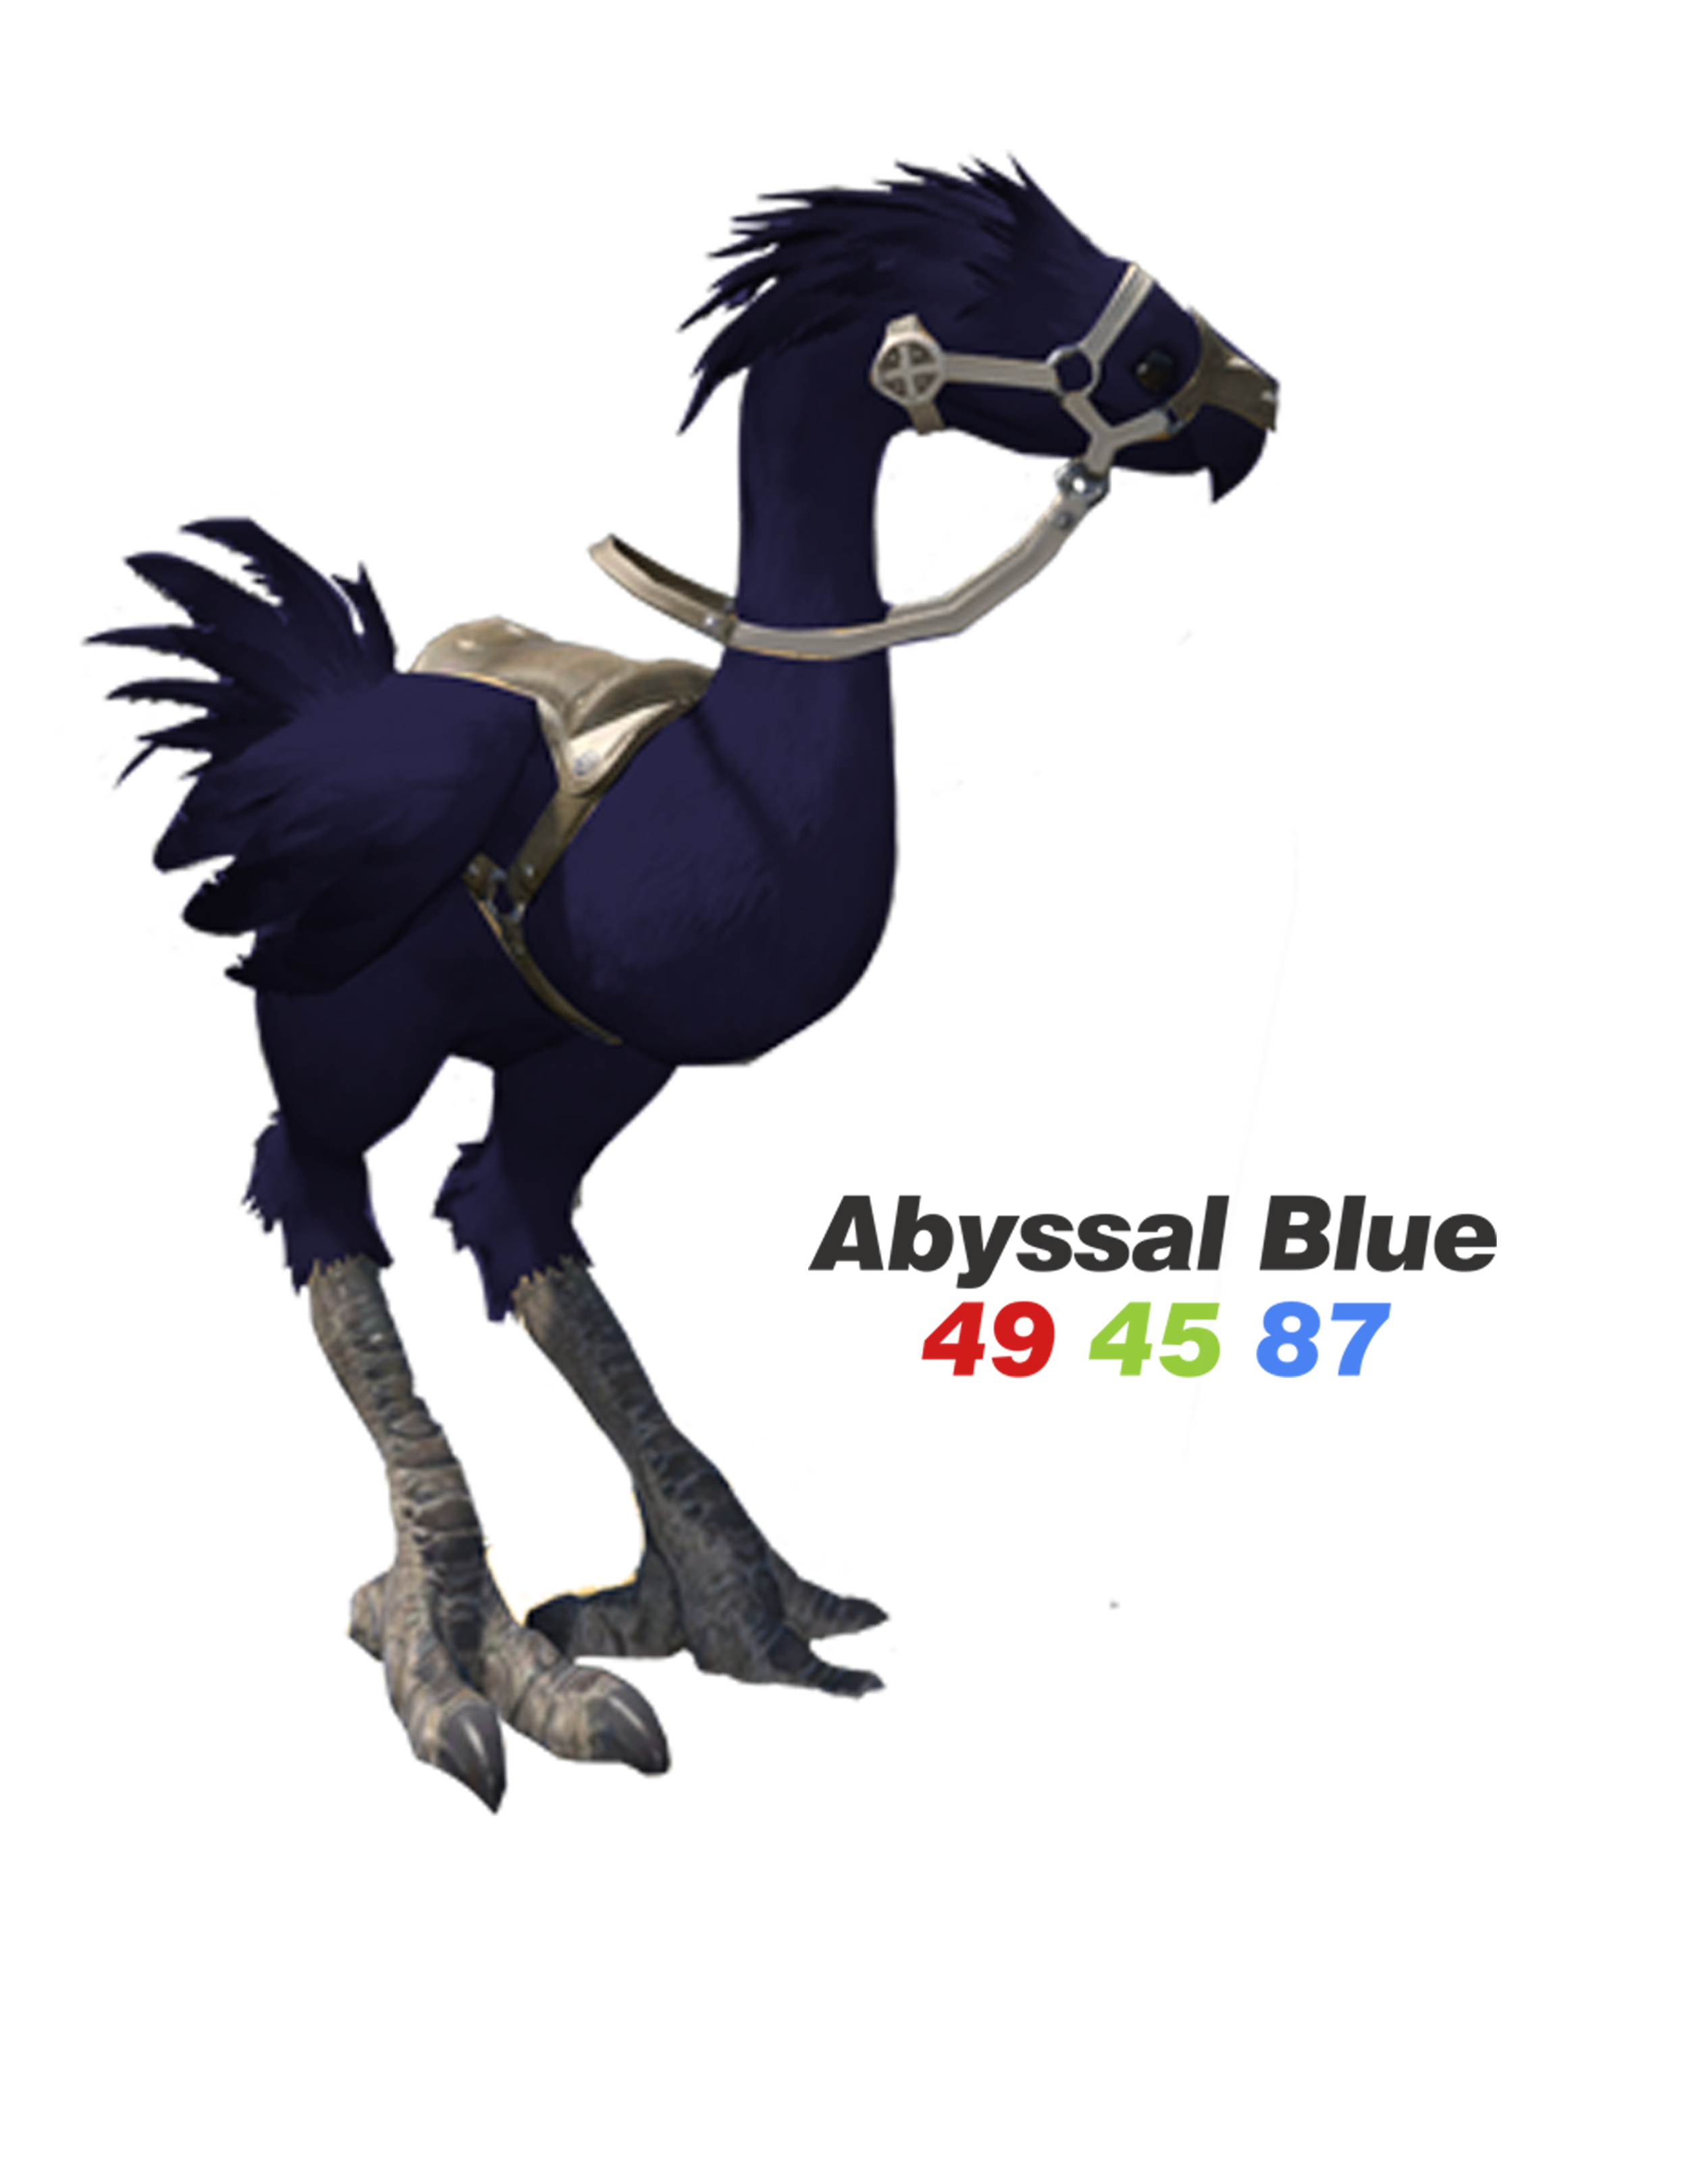 017Abyssal.png